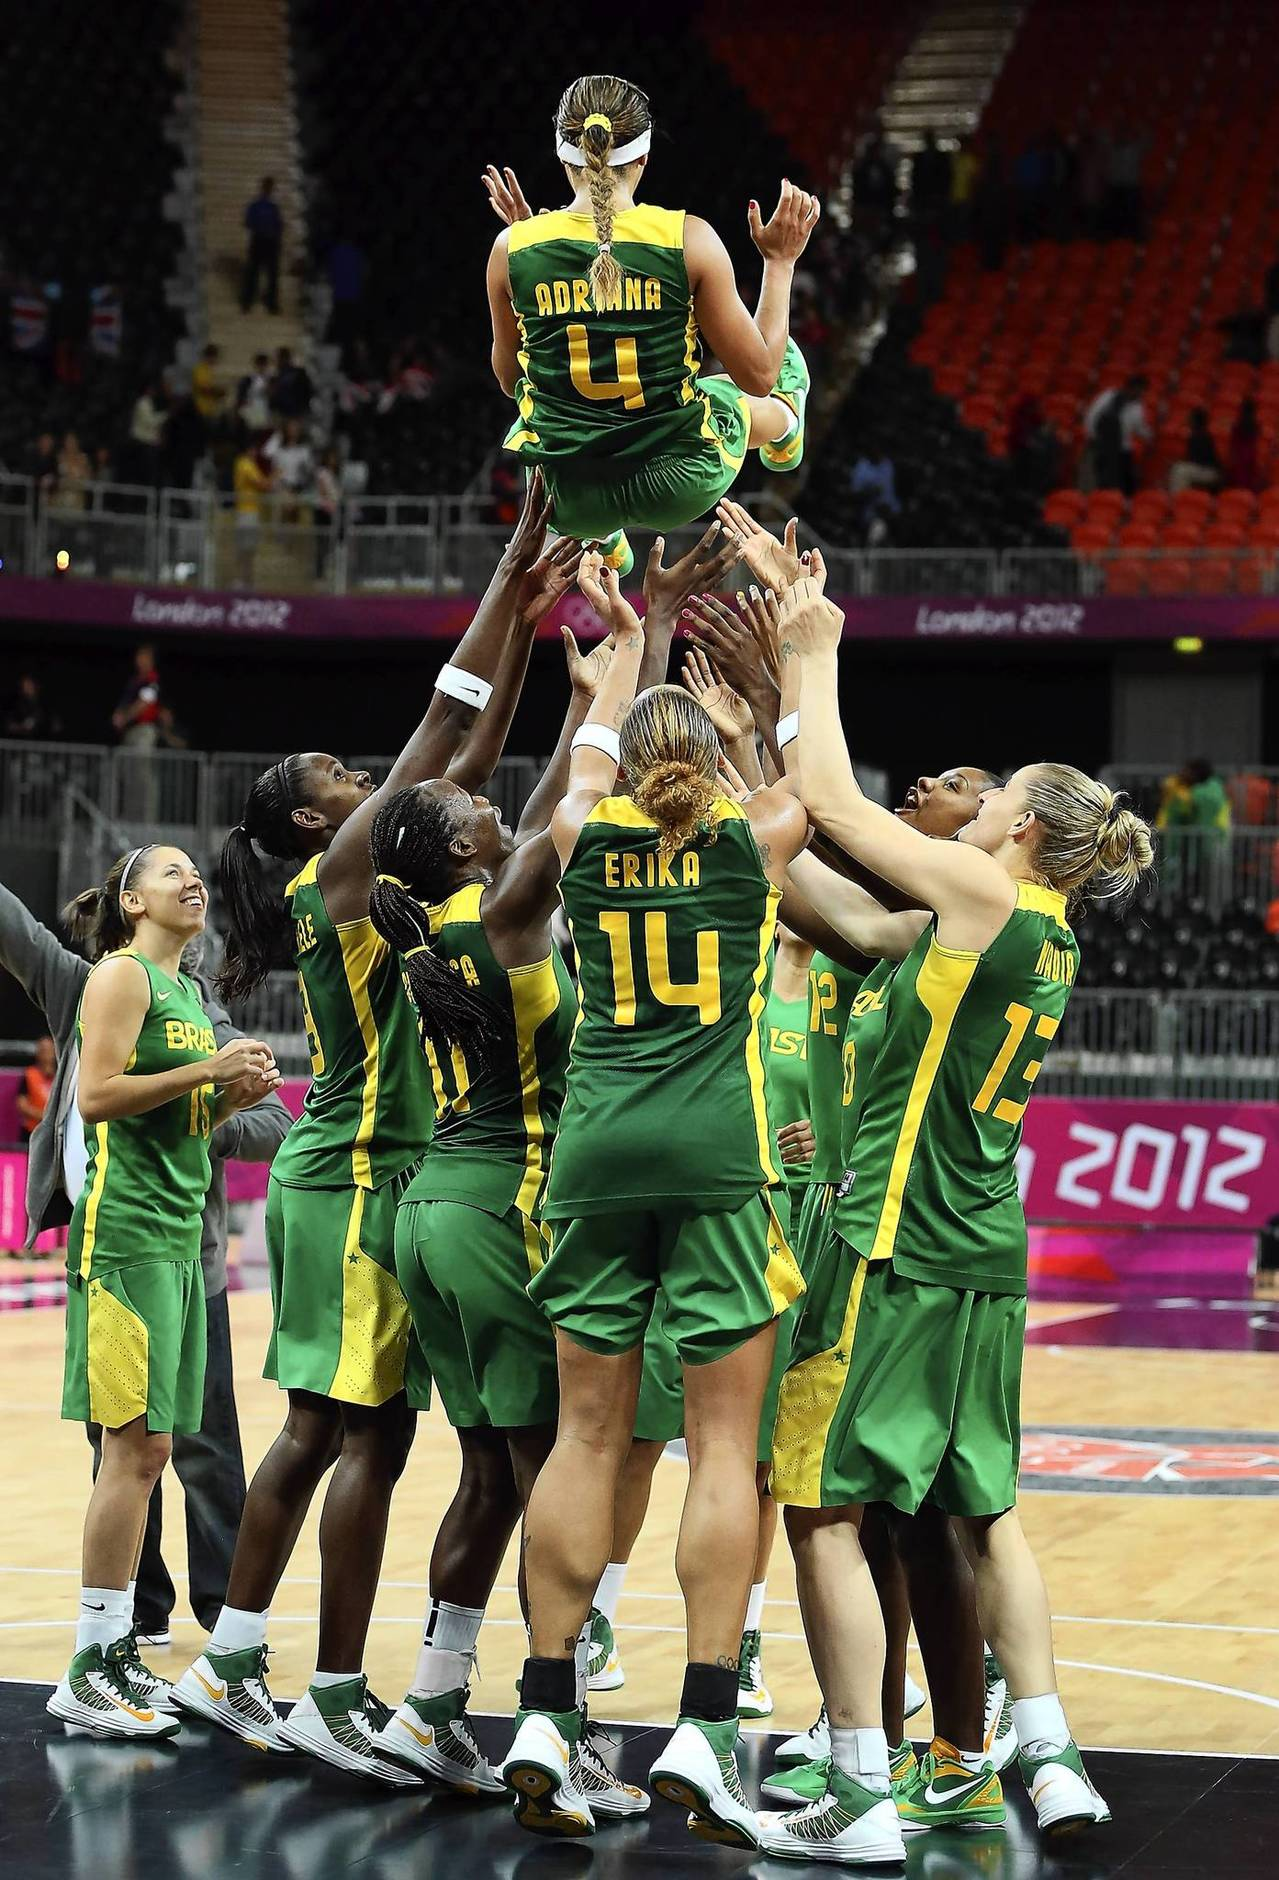 Brazil's Adriana Pinto is thrown into the air by teammates to honor her final game with the Brazil National Team following a game against Great Britain.